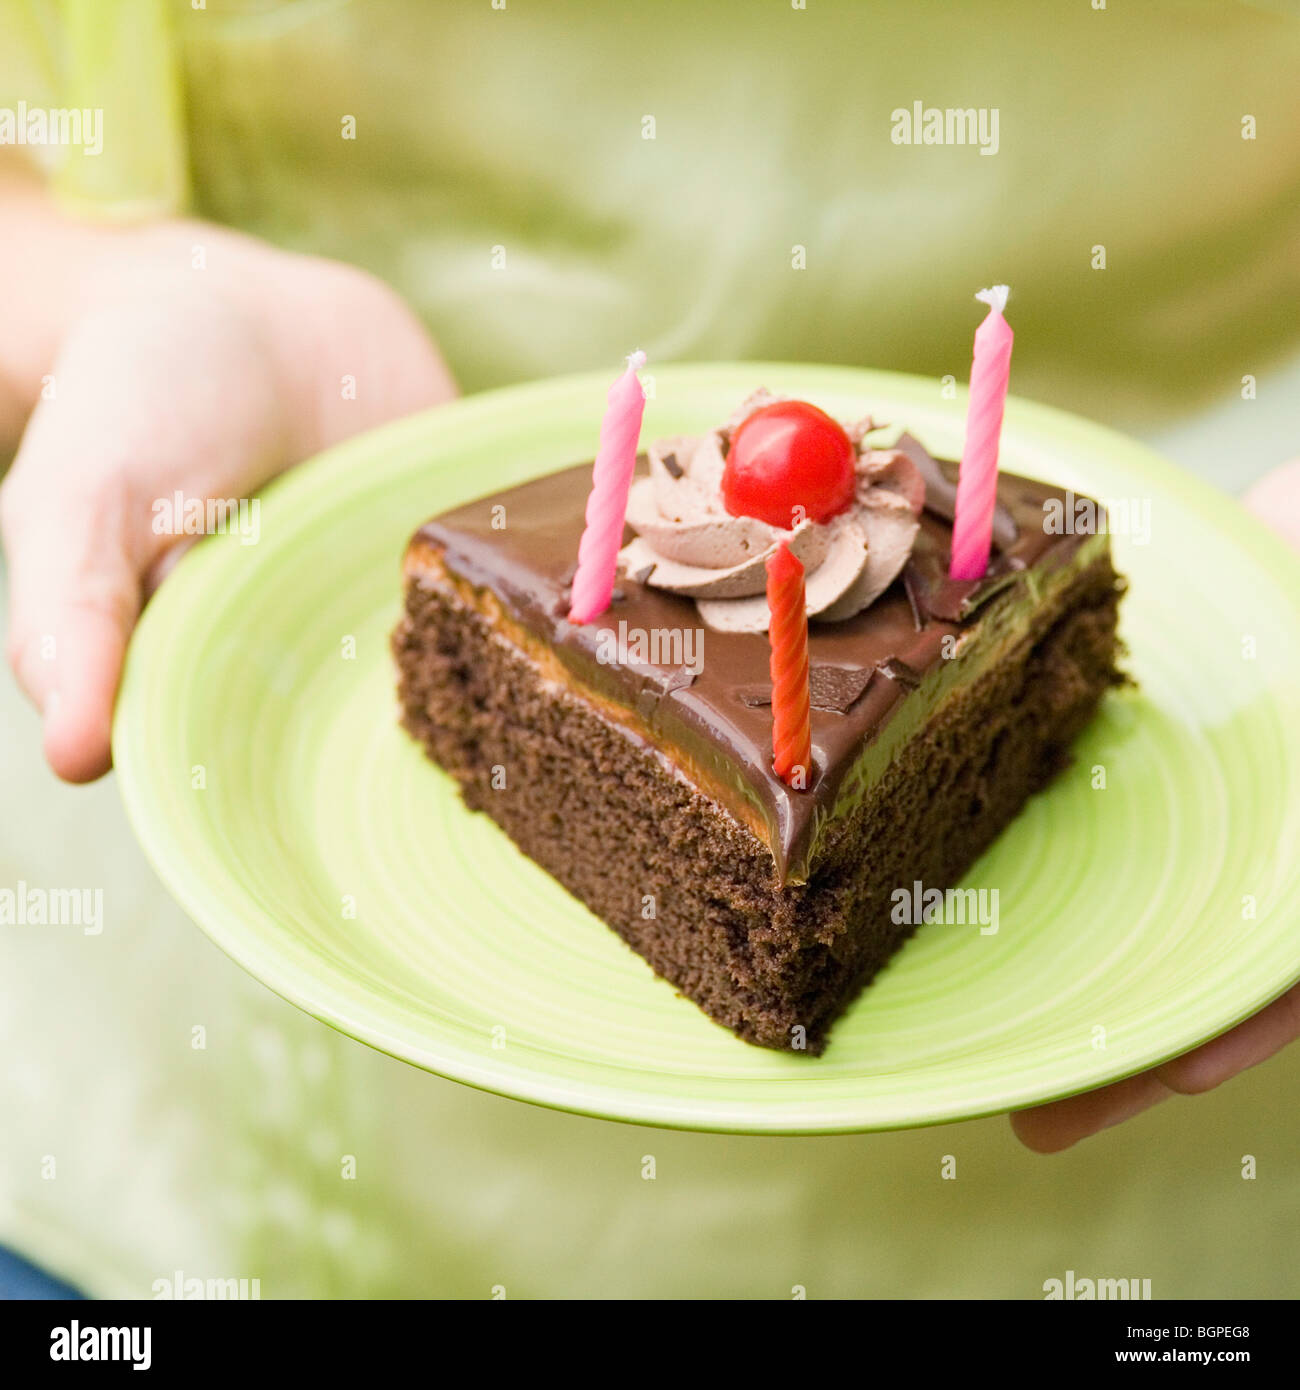 Mid section view of a woman holding a plate of birthday cake slice - Stock Image & Slice Chocolate Cake On Plate Stock Photos u0026 Slice Chocolate Cake On ...